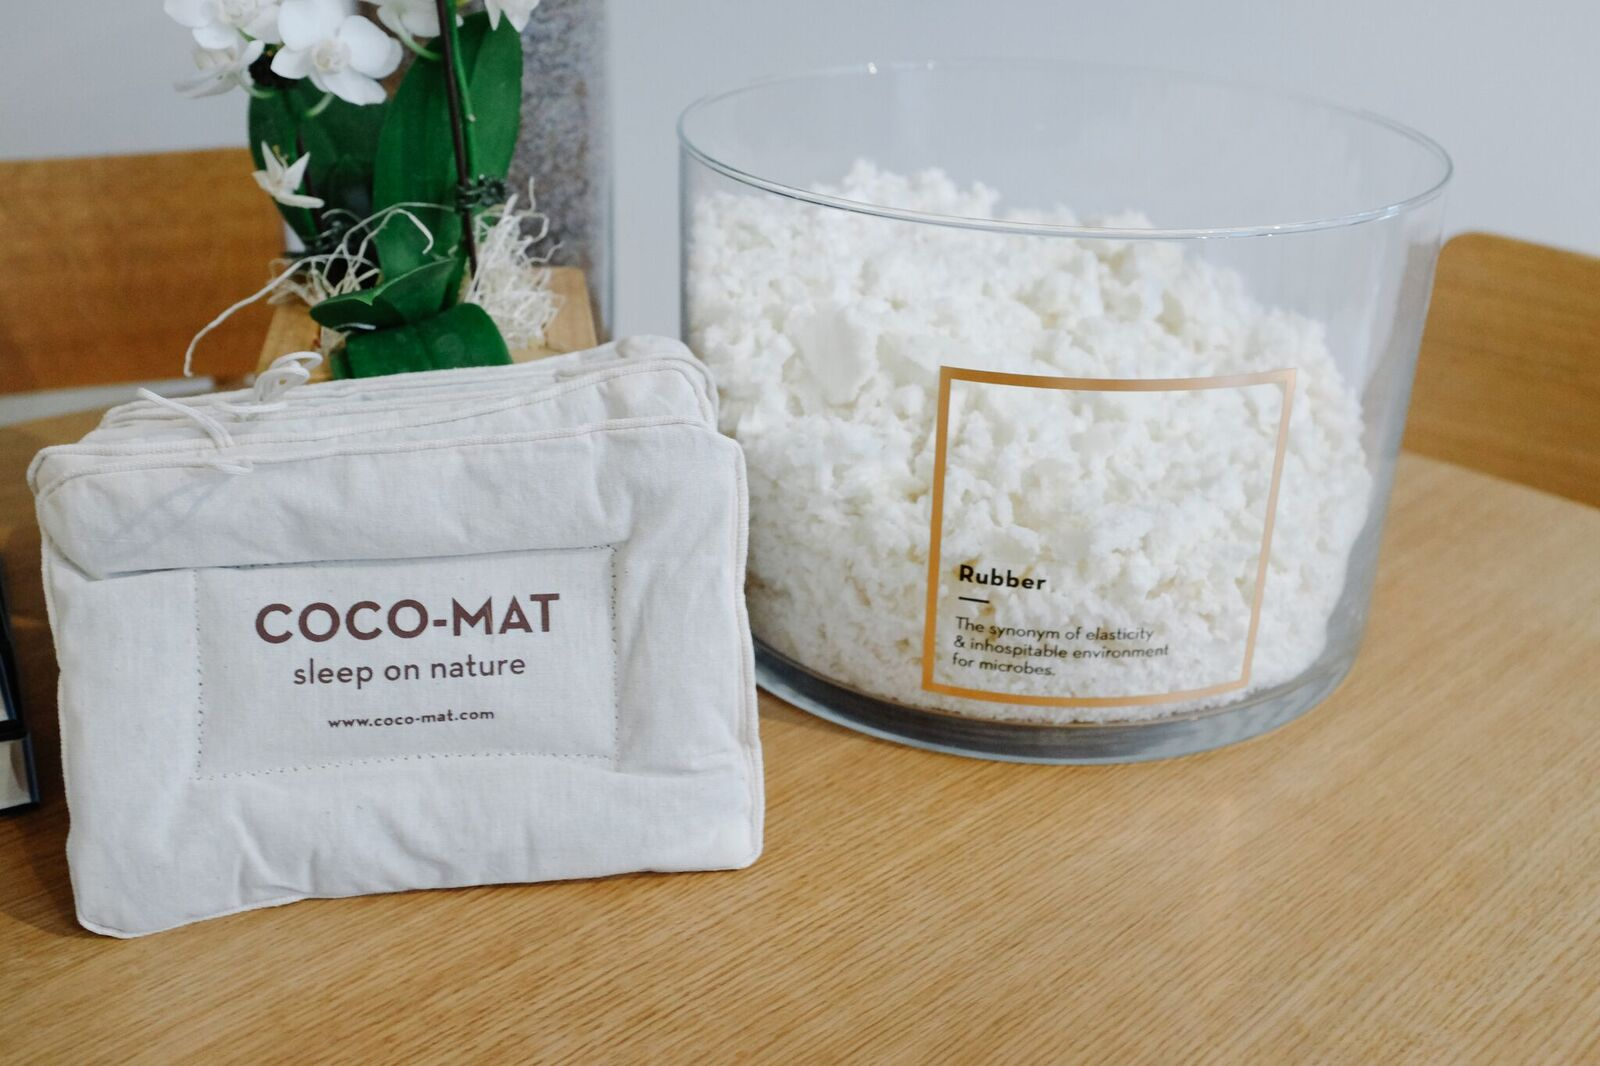 The all natural, lavender infused COCO-MAT pillow.